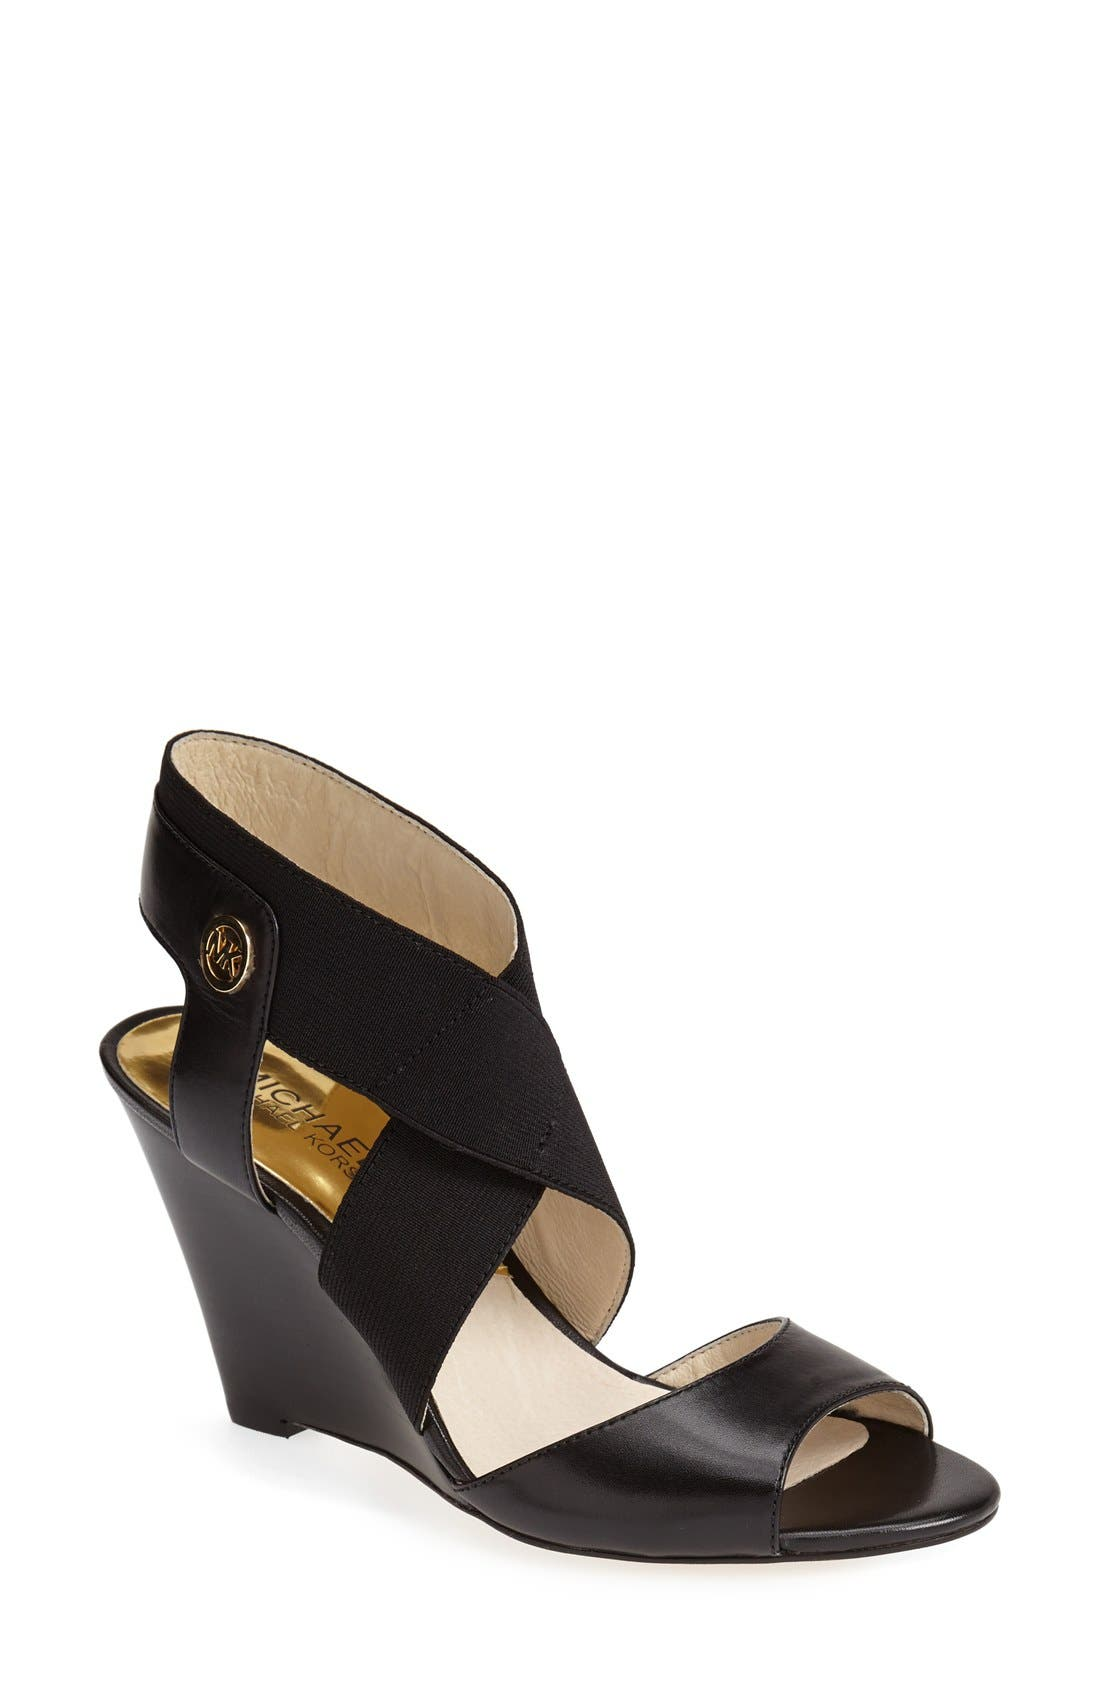 Alternate Image 1 Selected - MICHAEL Michael Kors 'Meadow' Wedge Sandal (Women)